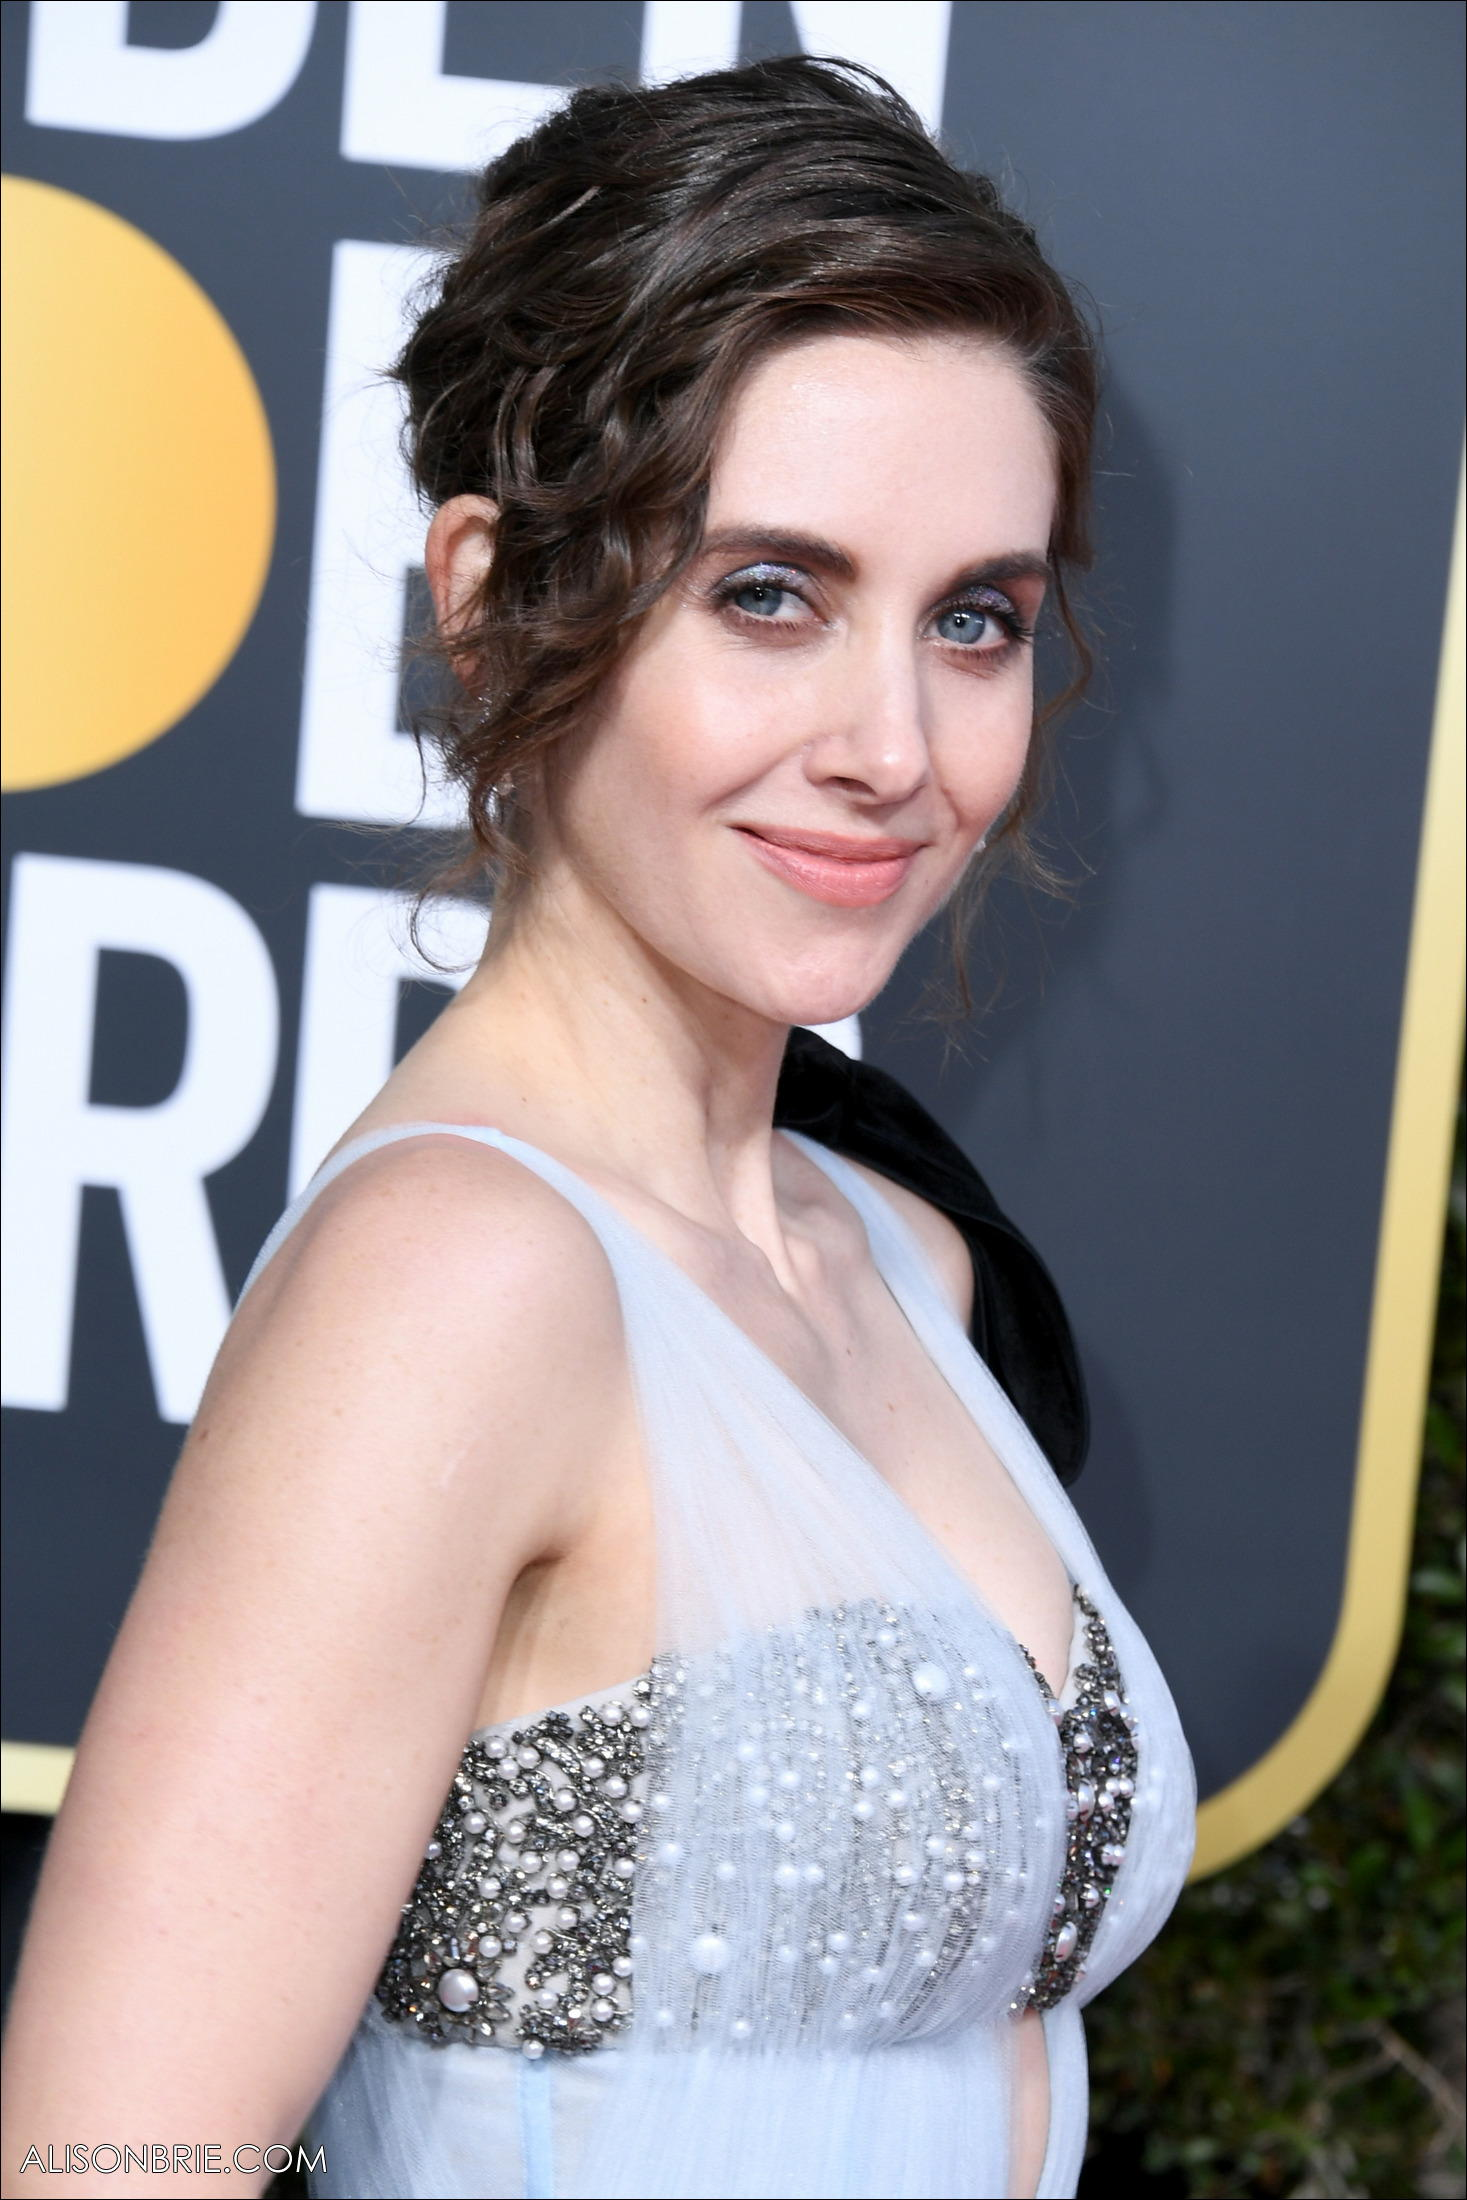 Alison Brie - 20+ Free and Always Fappable Images - Fan Fap